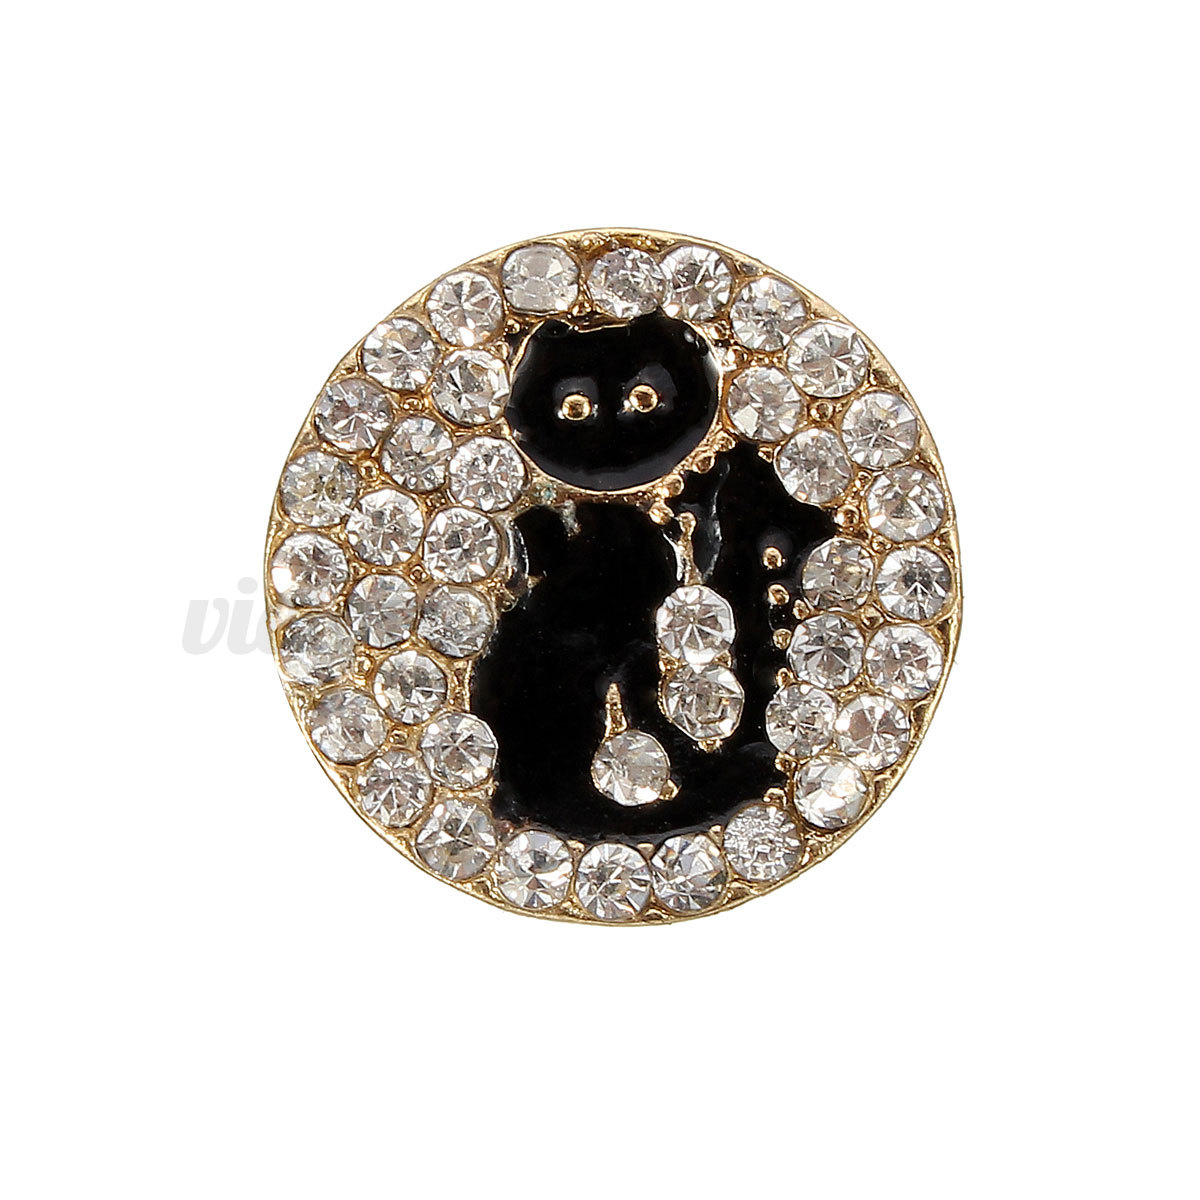 Http Www Ebay Com Itm 3d Crystal Bling Home Button Sticker Phone Decor For Iphone 4 5 6 Ipad Ipod Gift 231808028476